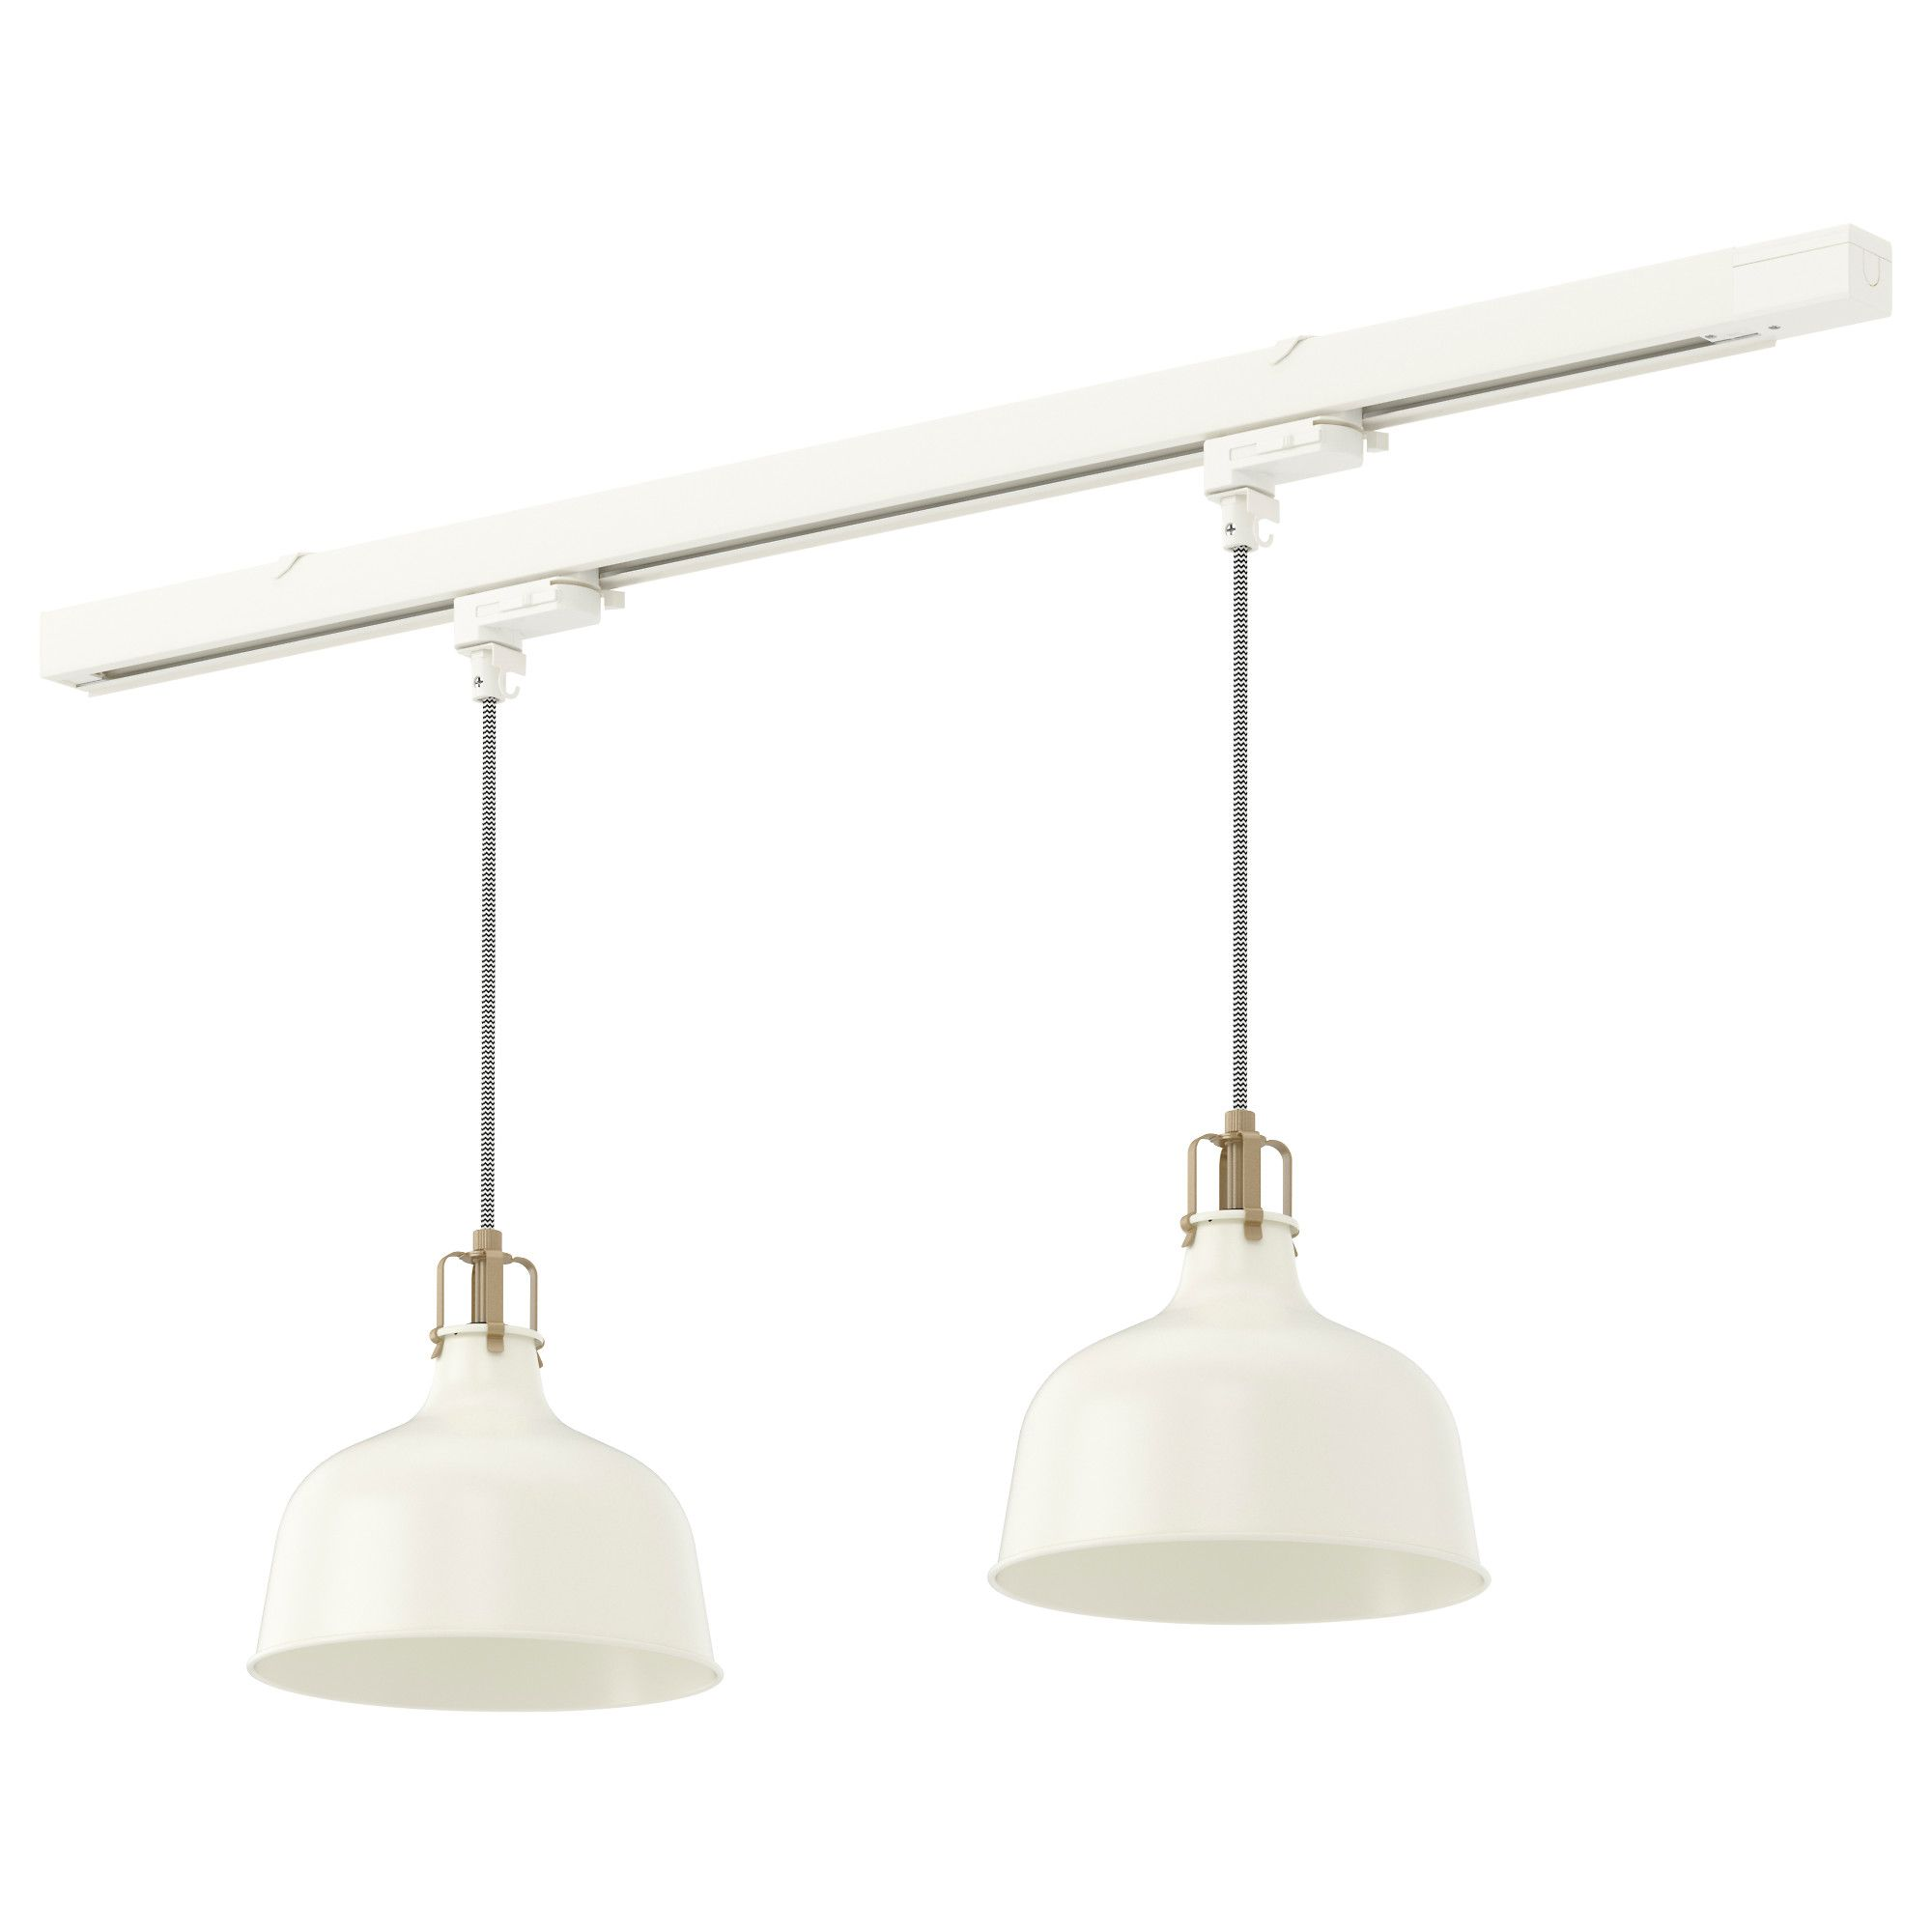 Living Ceiling Lamps Ll 12396 Ikea Pendant Light Ceiling Lamp Indoor Lighting